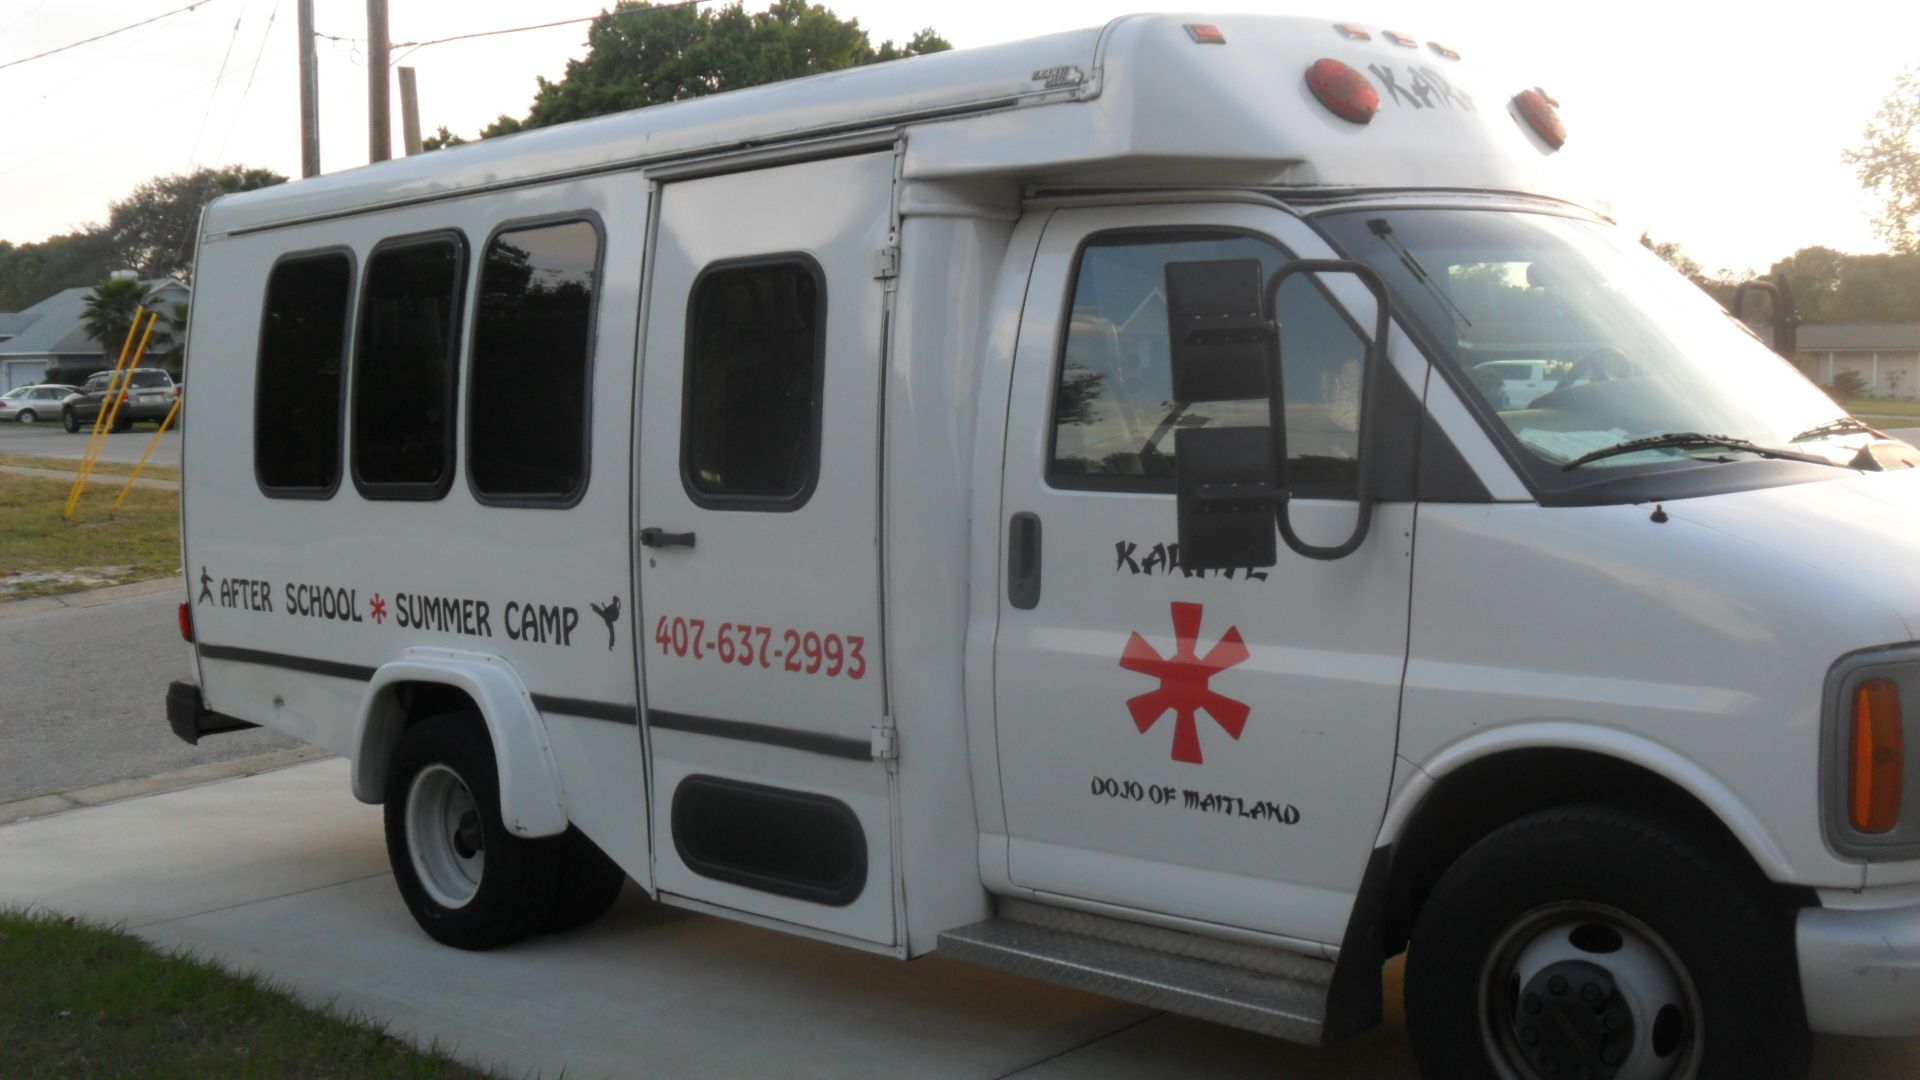 Shuttle buses for afterschool karate and summer camp field trips